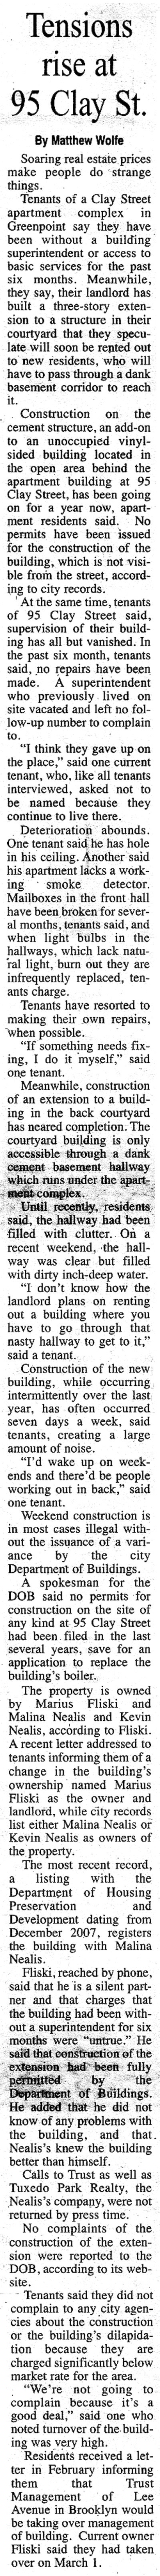 3/7/2008 Greenpoint Courier